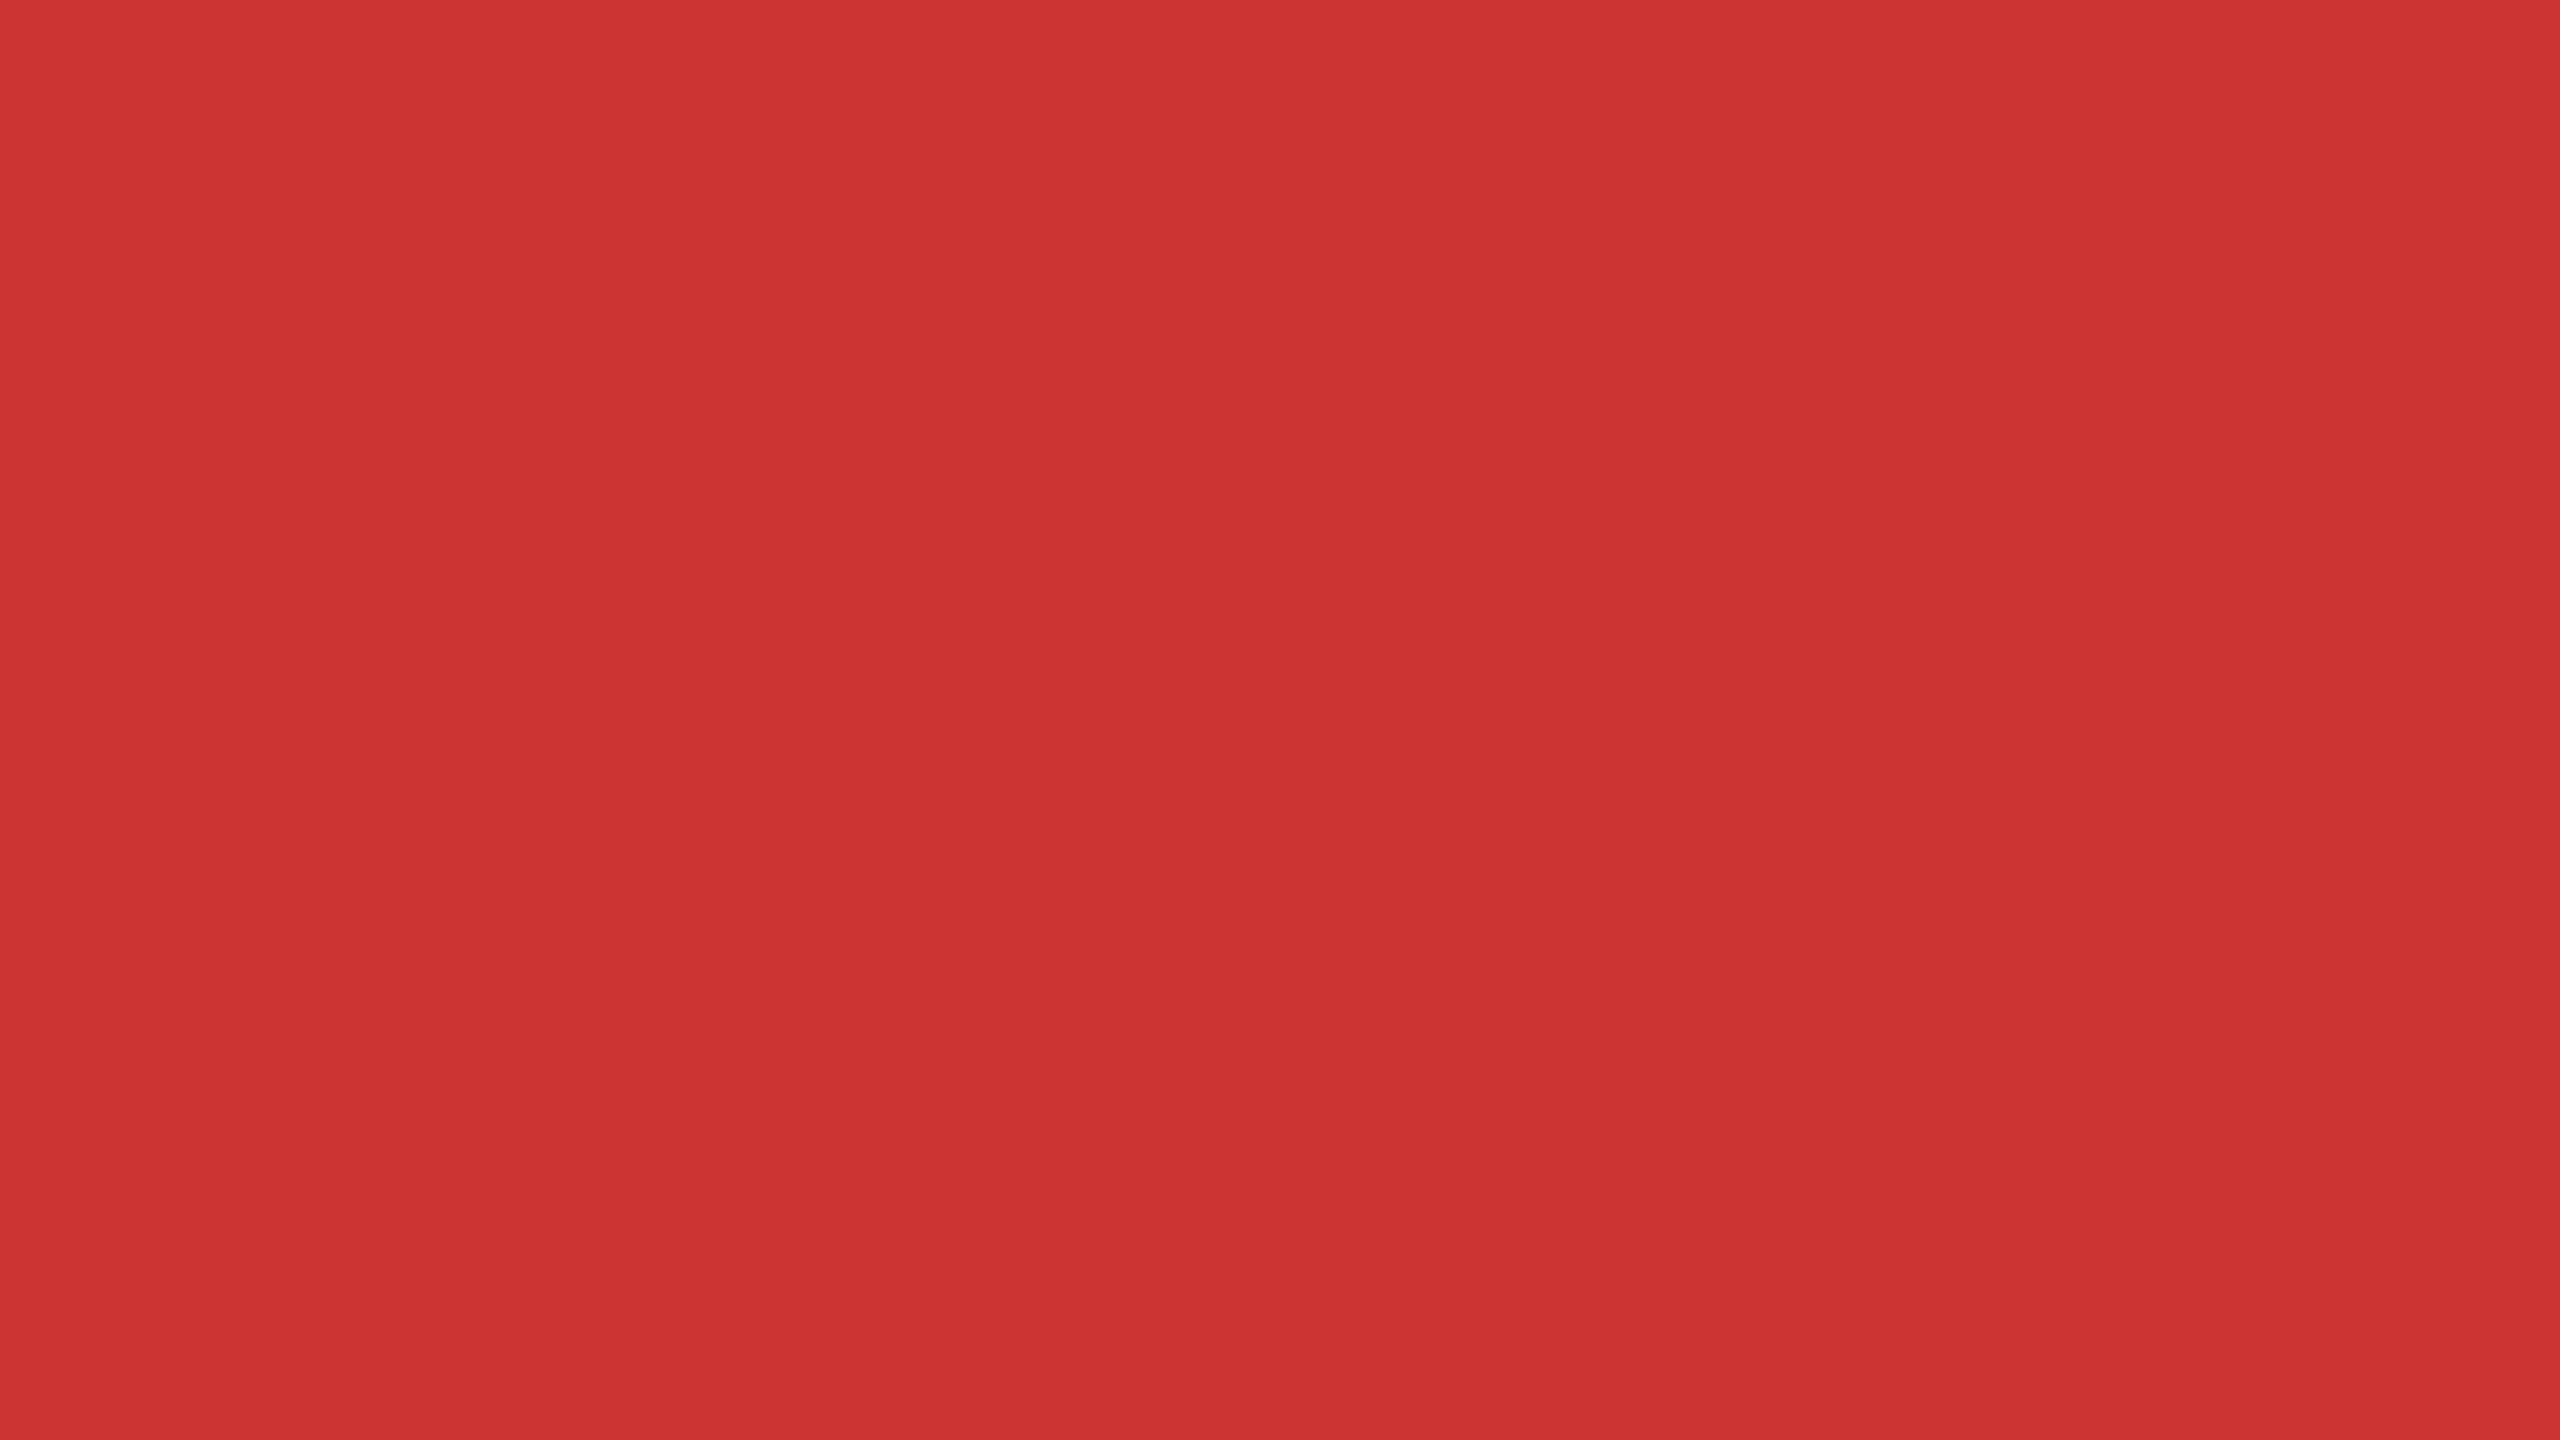 2560x1440 Persian Red Solid Color Background